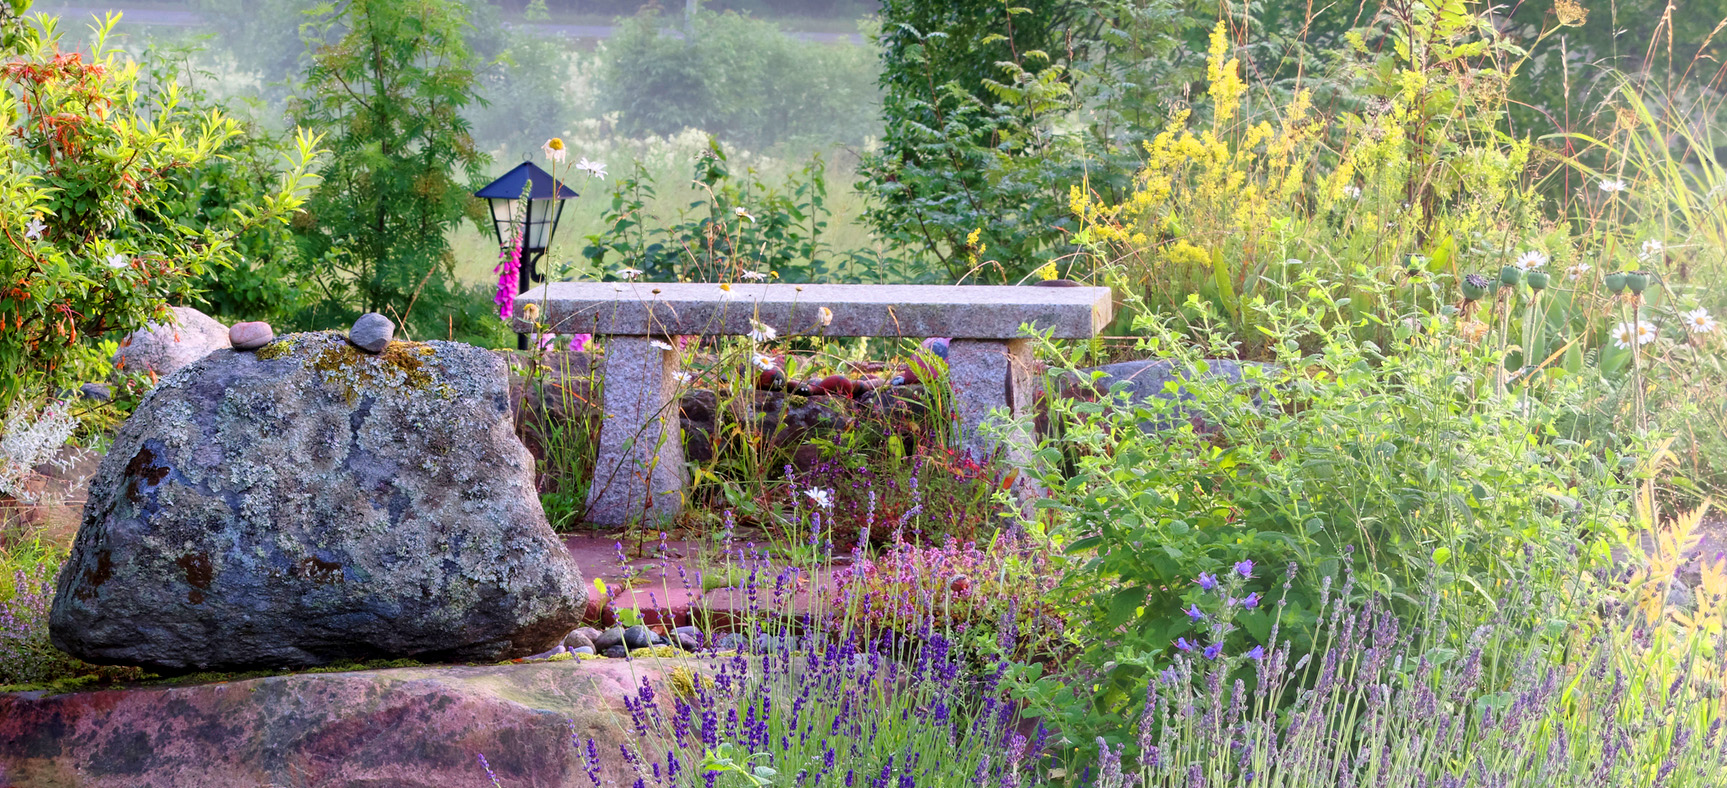 The Top 6 Landscape Design Trends For 2016